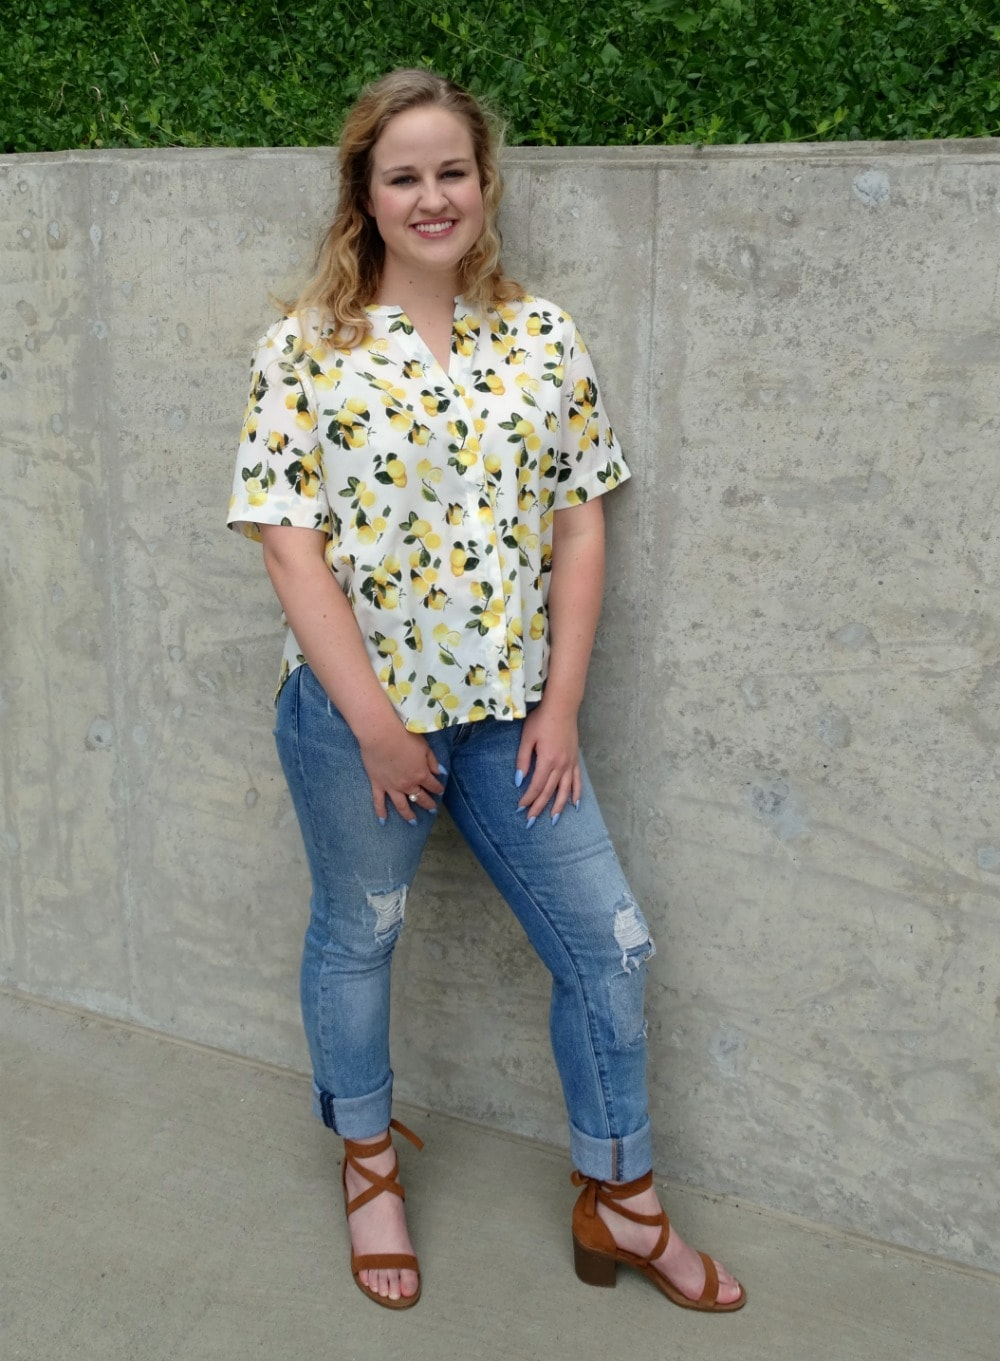 Student style on campus: lemon print short sleeved button up blouse paired with light-wash distressed denim jeans and brown lace-up sandals.